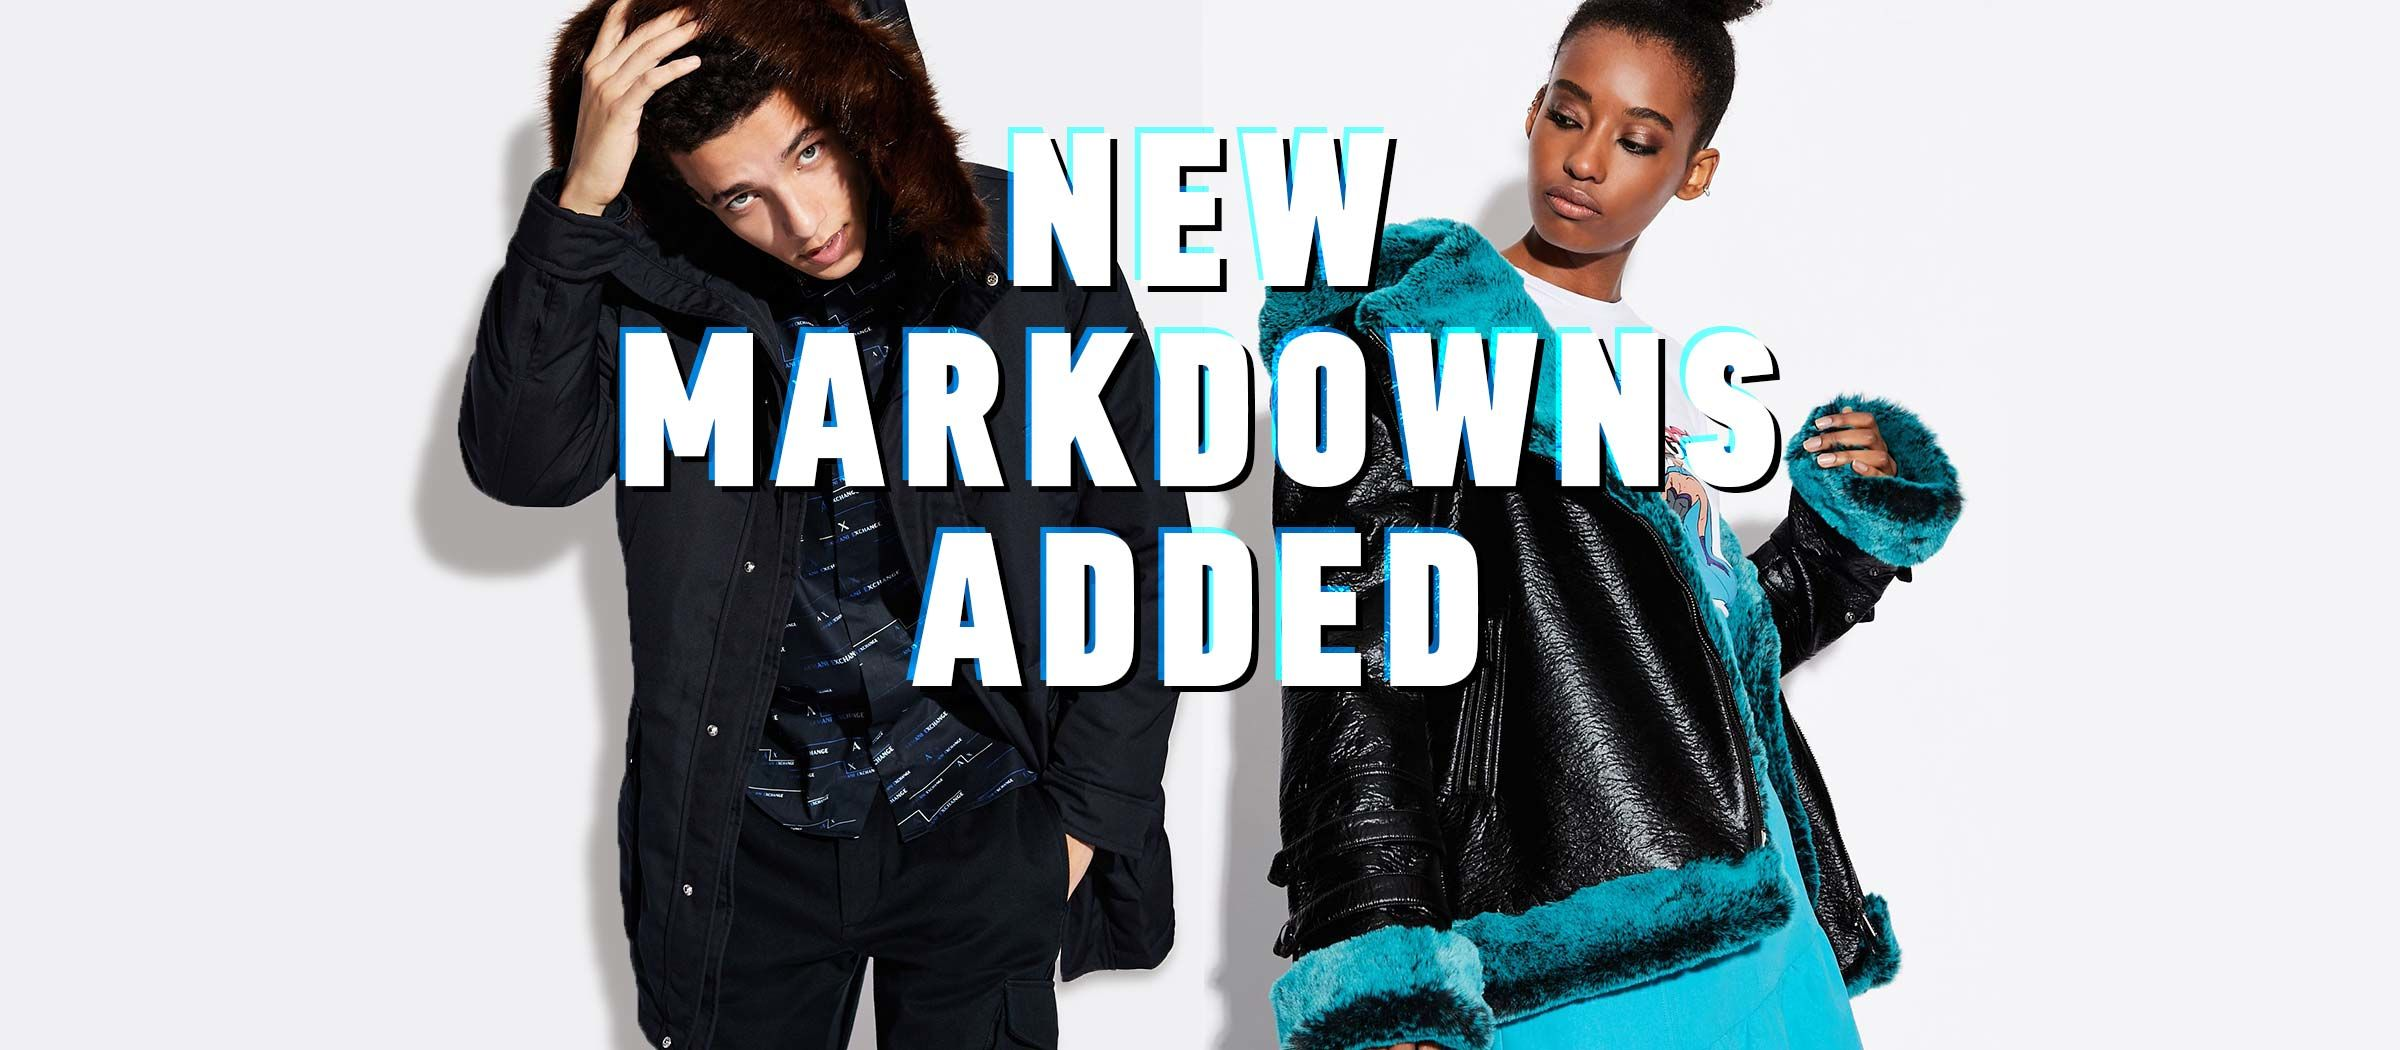 New Markdowns Added